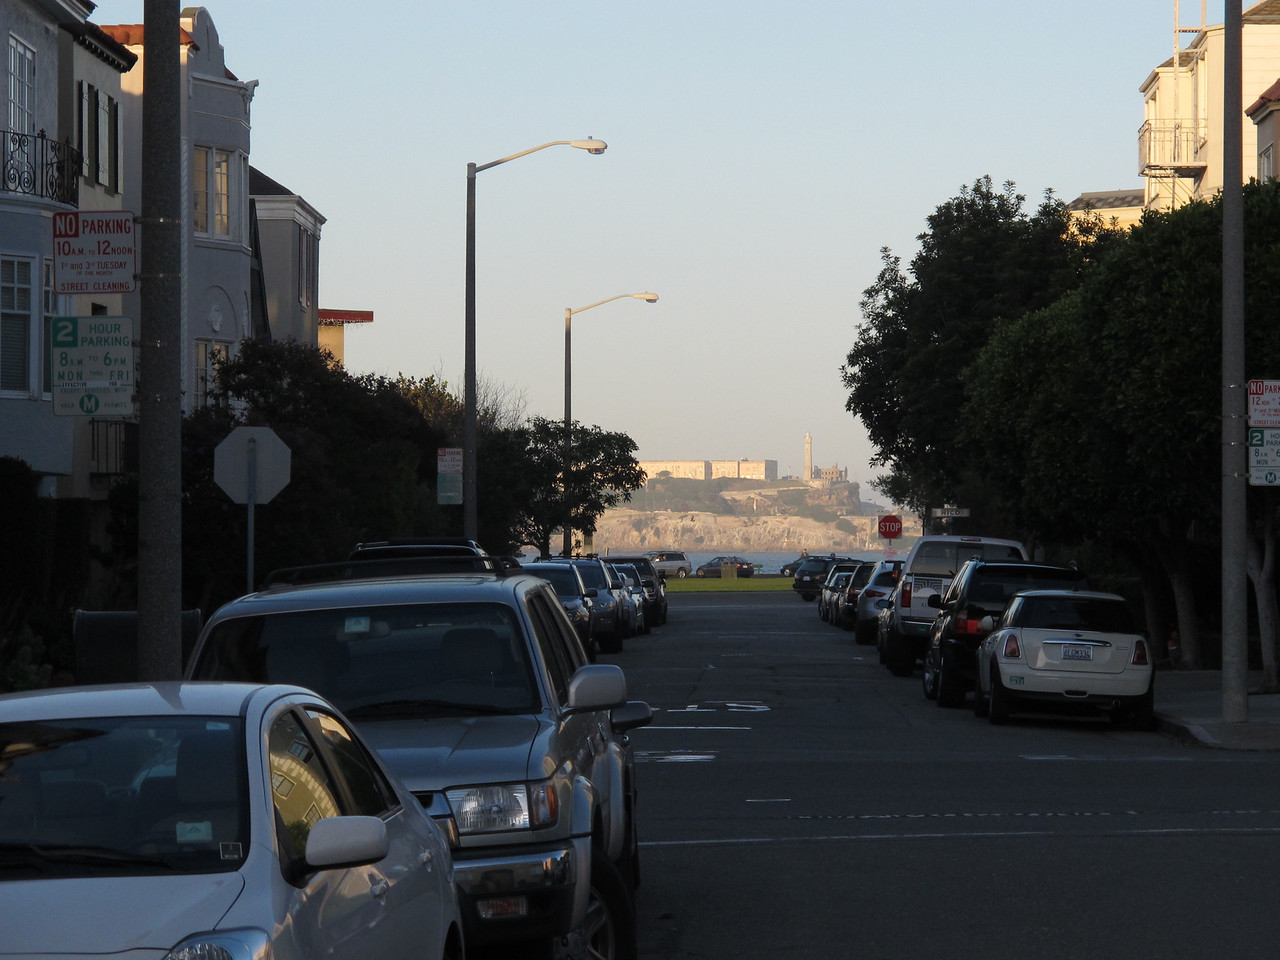 Looking down the road towards Alcatraz.